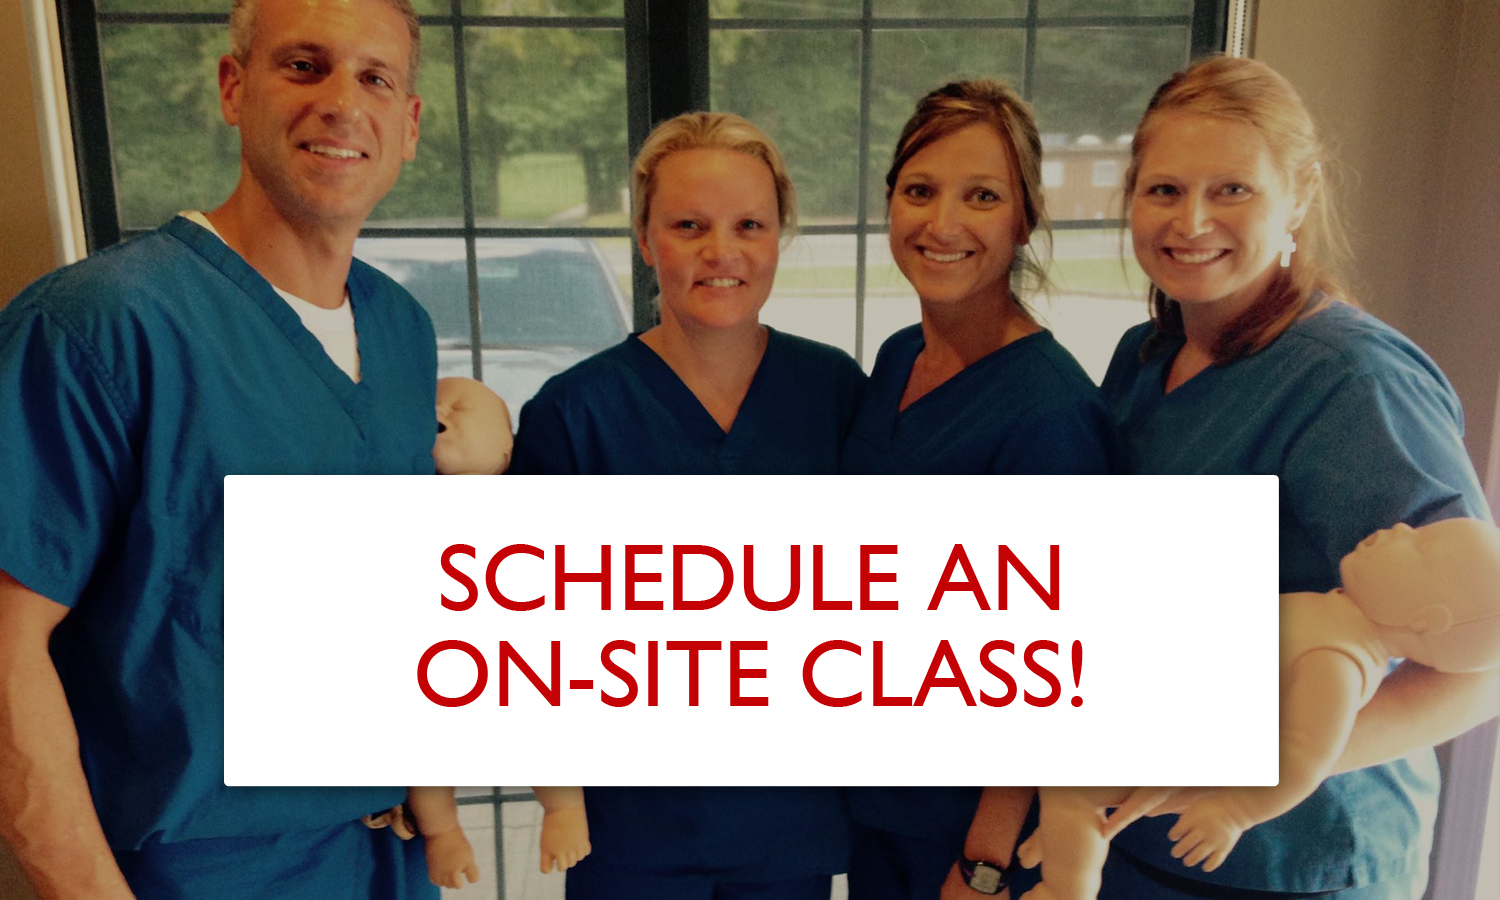 Schedule an On-Site Class!